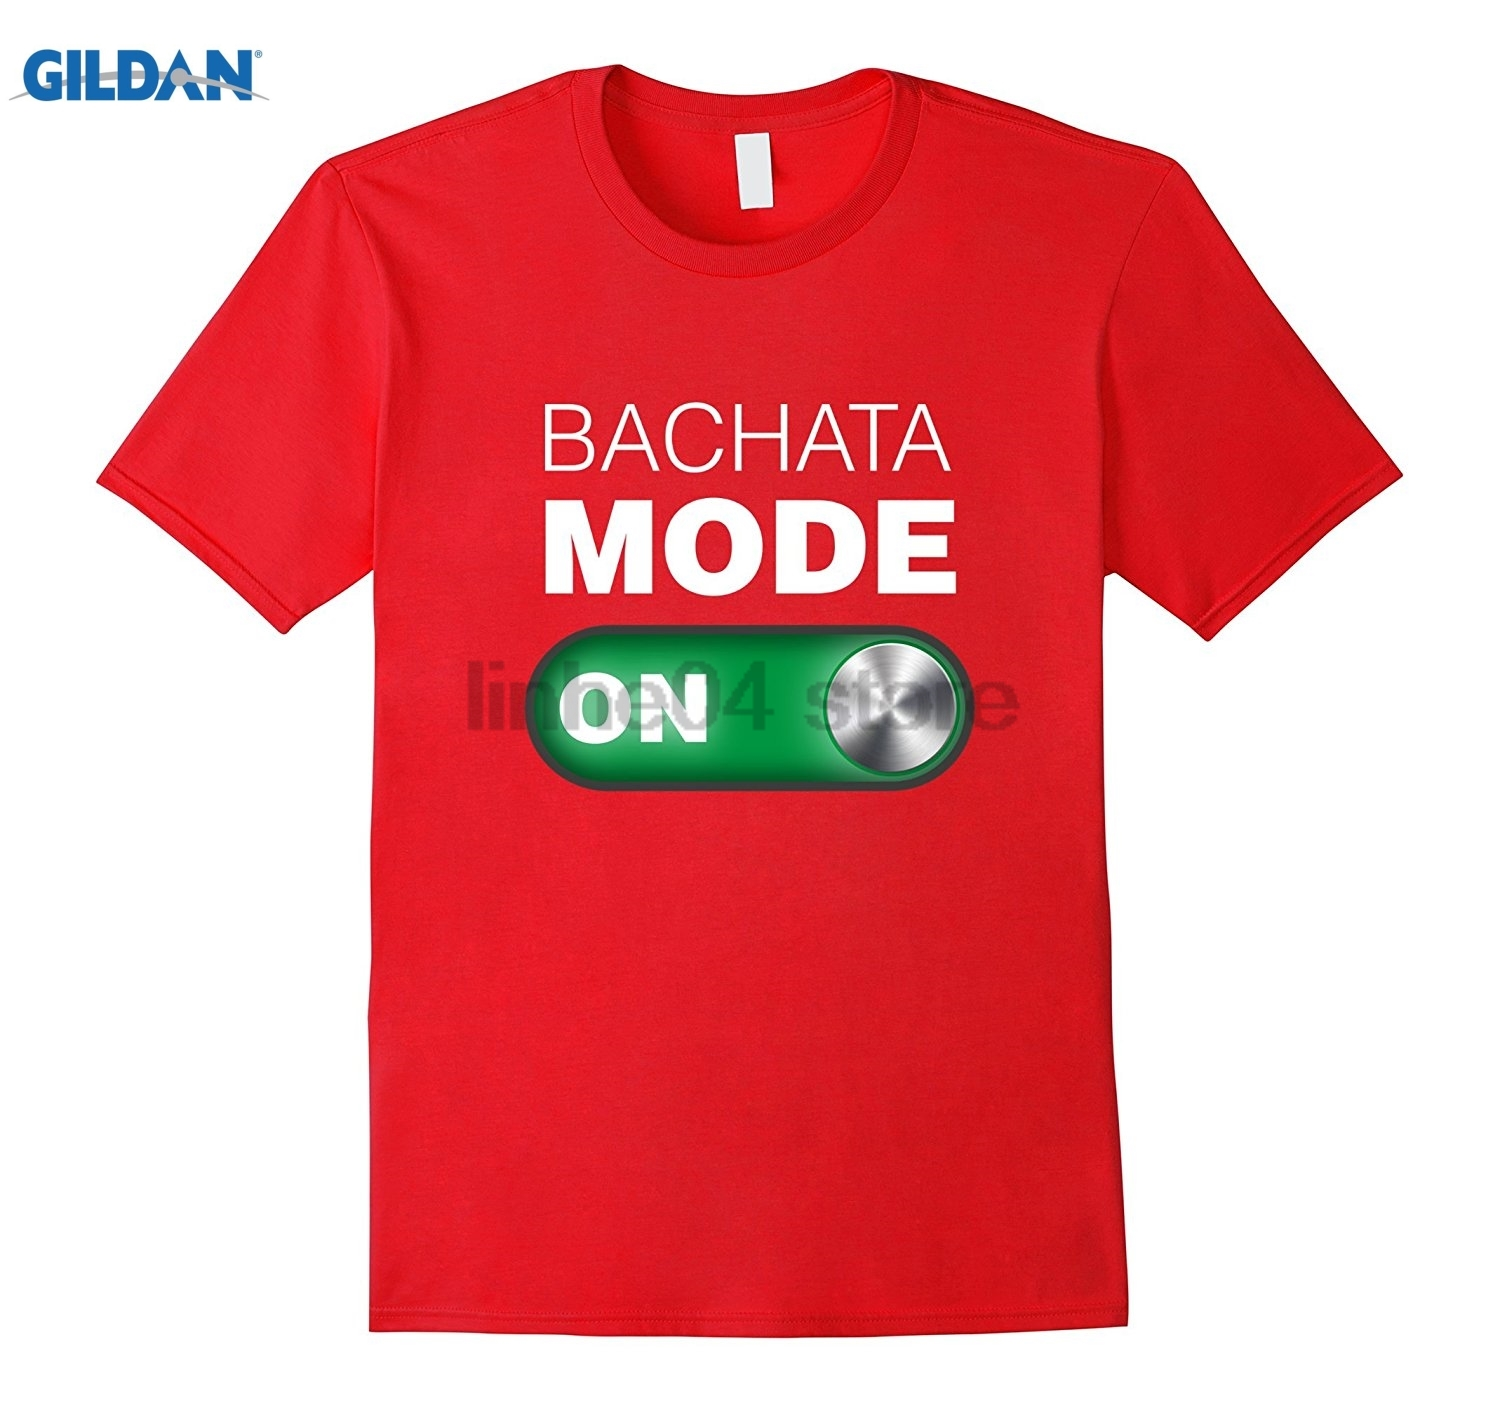 GILDAN Bachata Mode On Tee Shirt. Expressive Dance Shirt. dress T-shirt